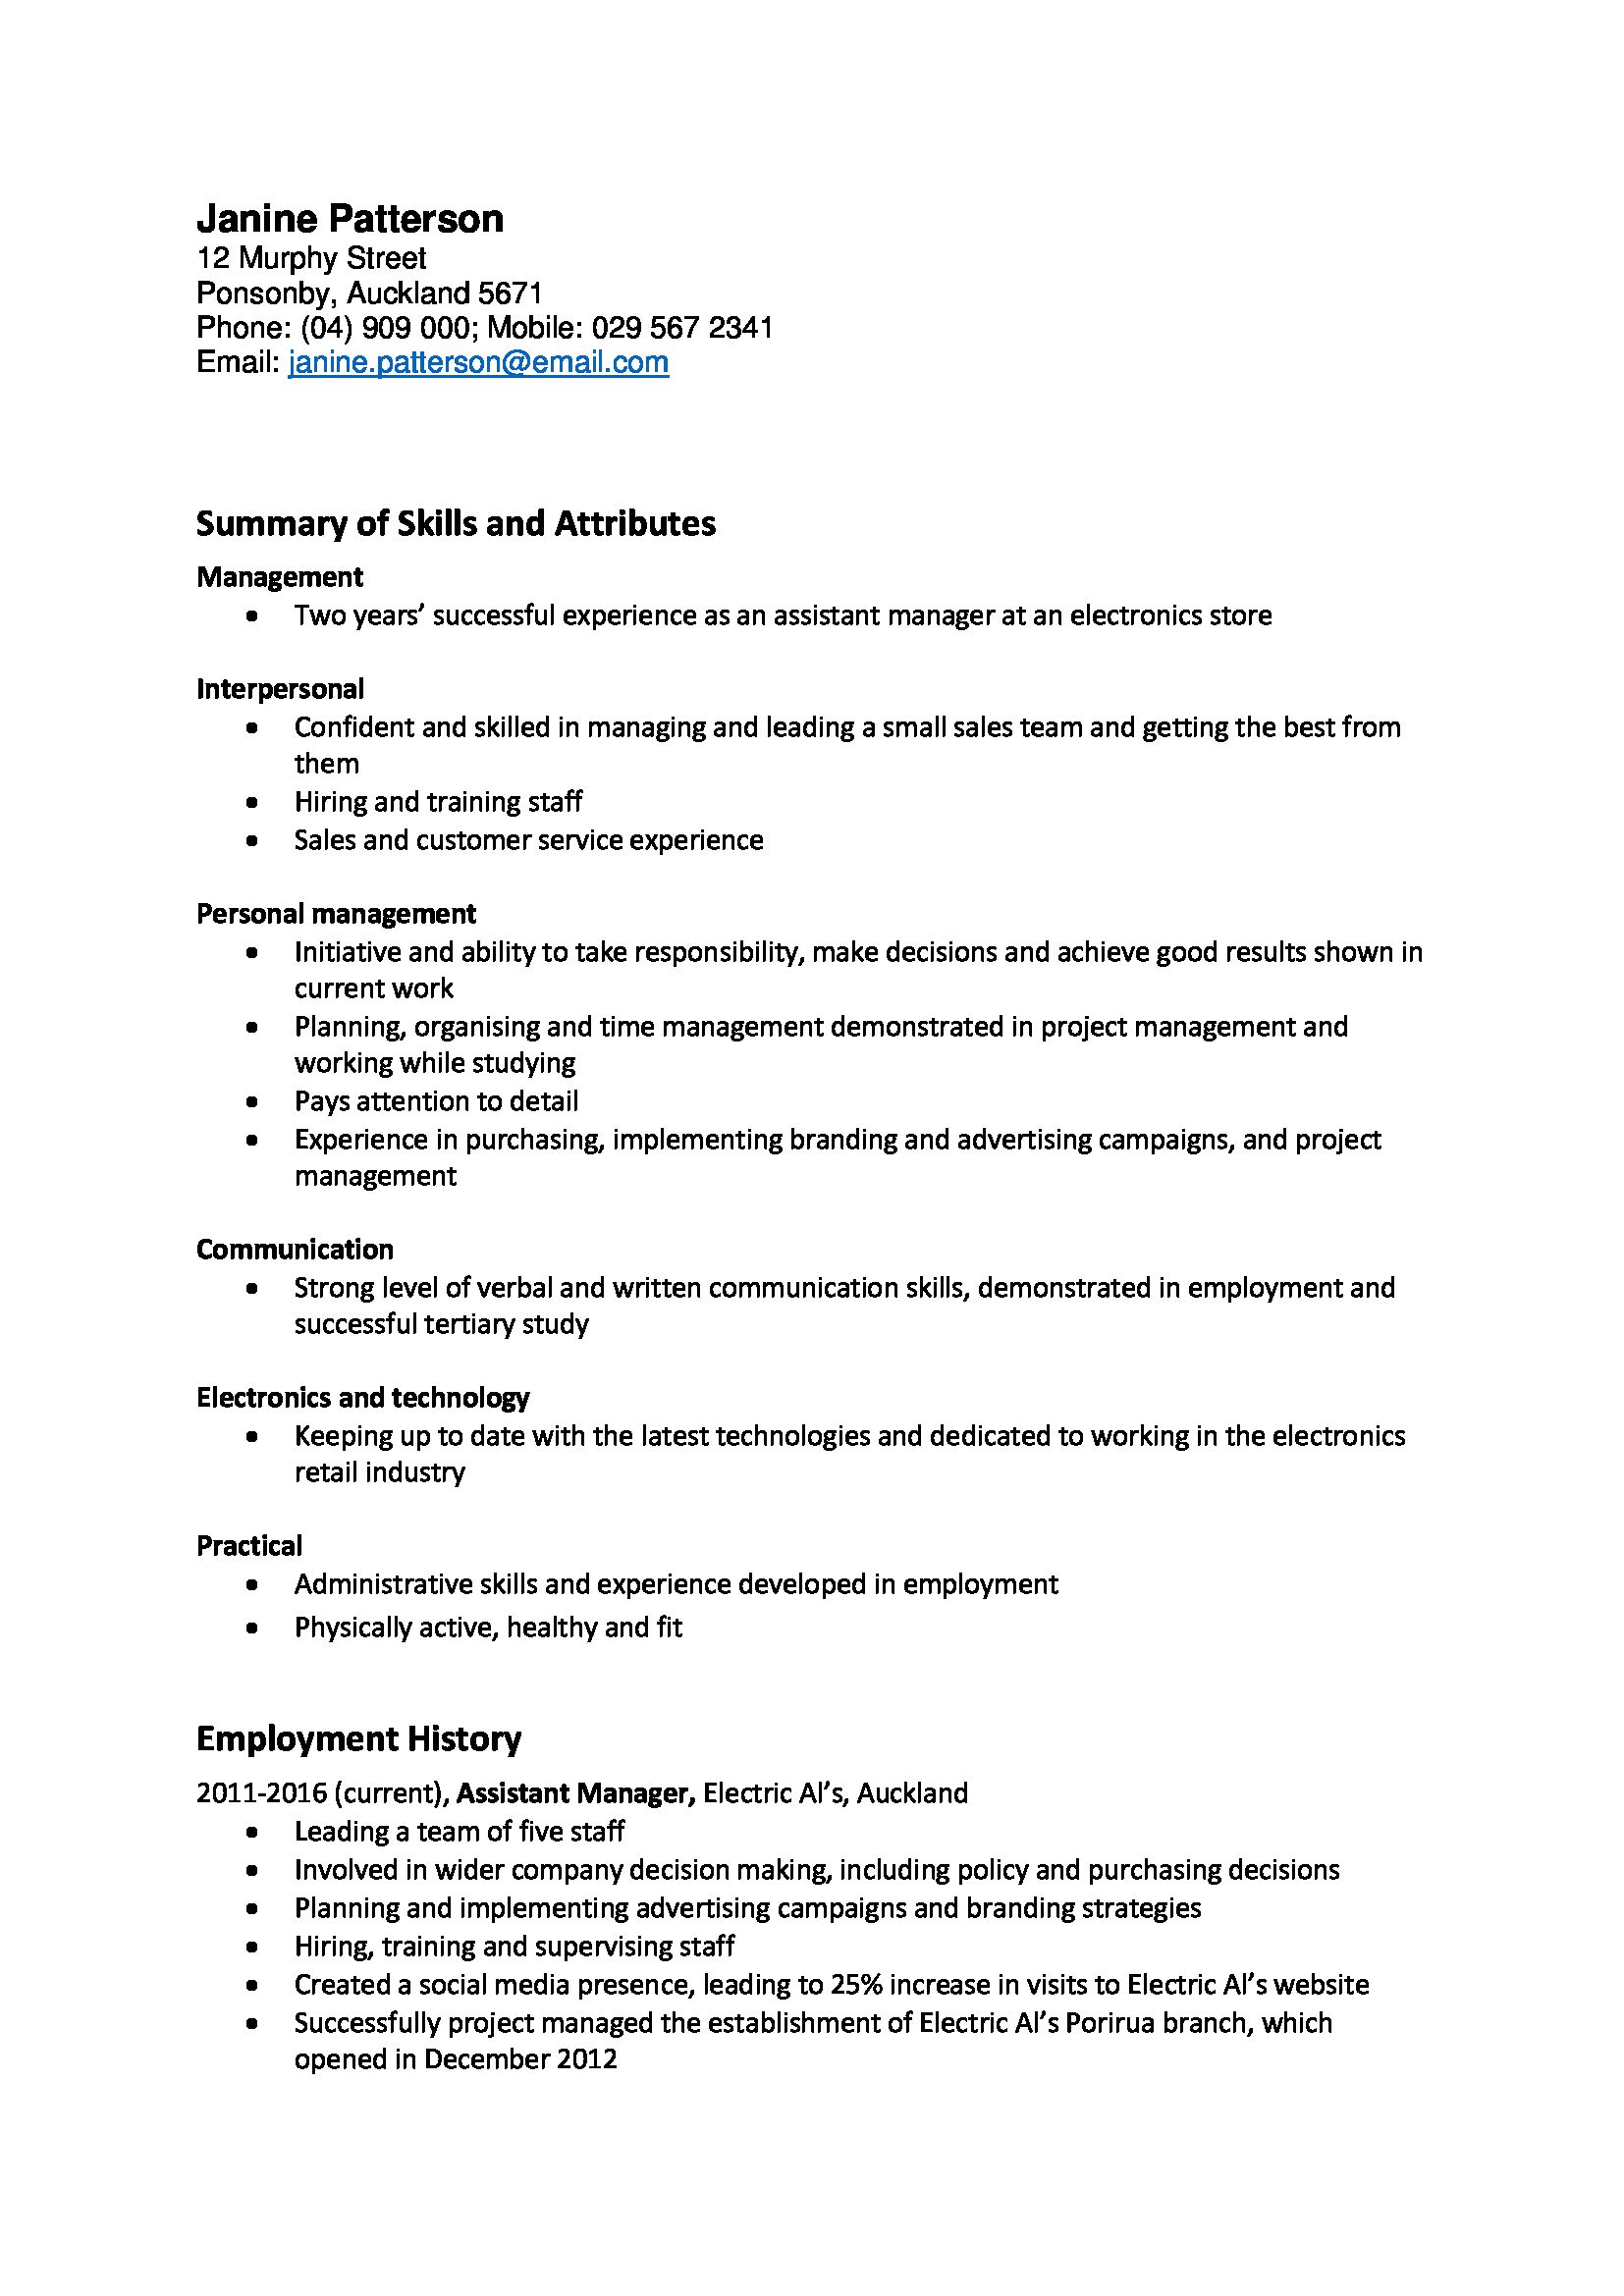 How to write a good cover letter new zealand inviview new zealand cover letter template templates spiritdancerdesigns Images